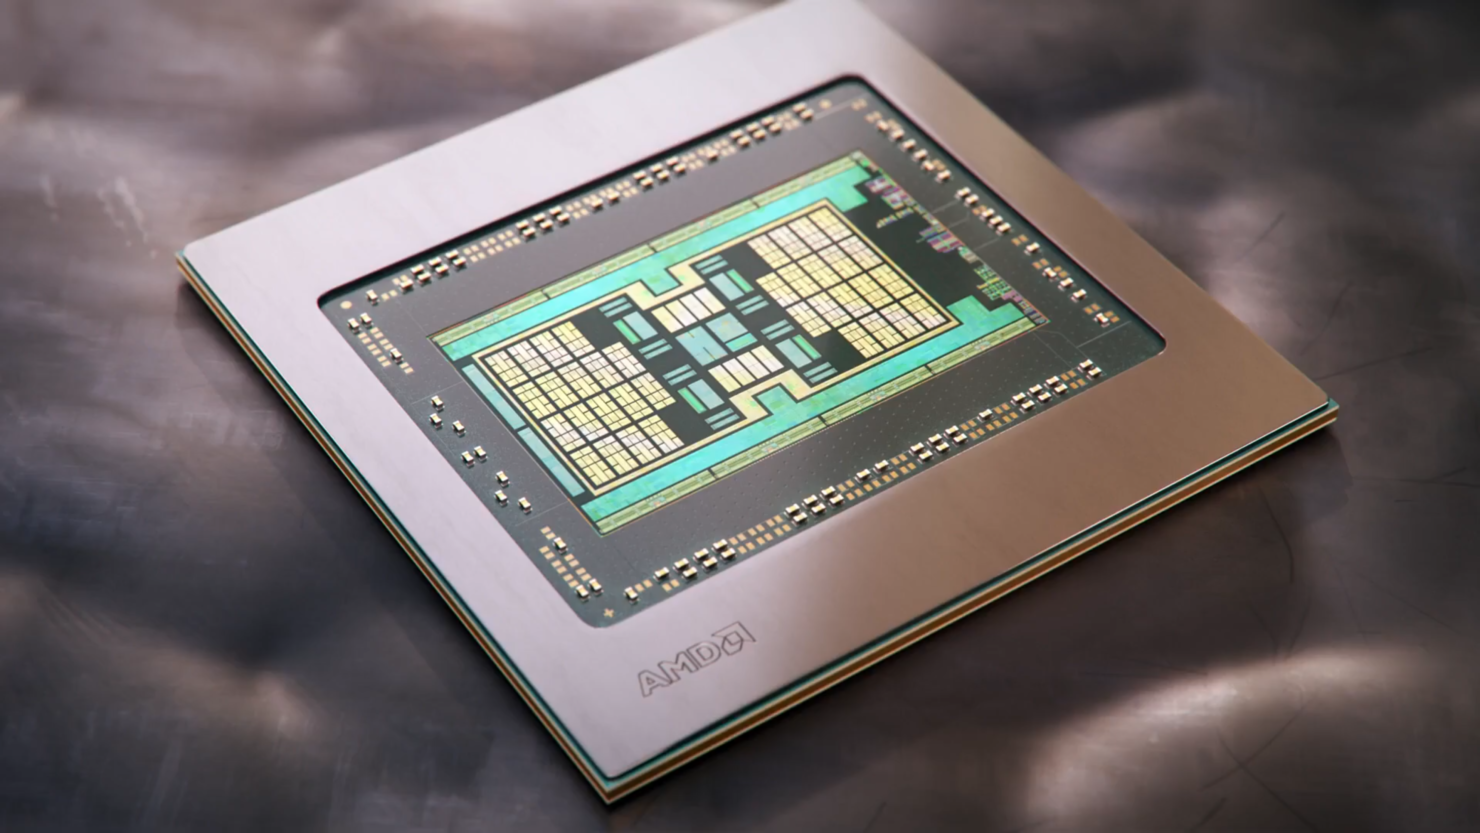 a-glimpse-of-rdna-3-graphics-architecture-based-gpus-&-apus,-amd-patents-active-bridge-chiplet-with-integrated-cache-for-multi-chiplet-designs